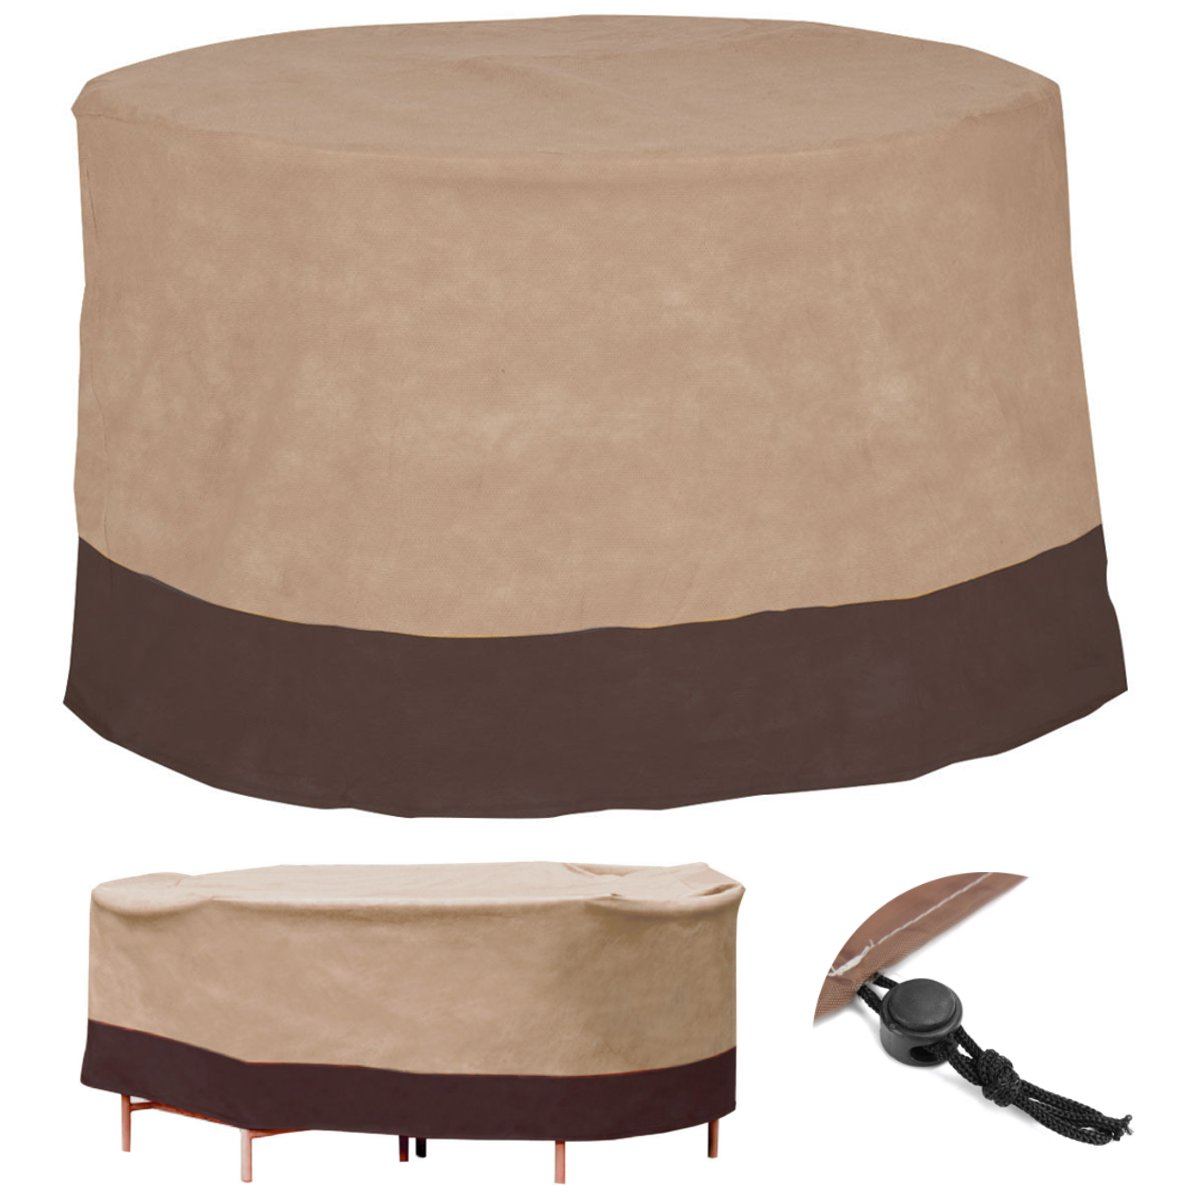 Table runner on round table - Brown Table Cover Waterproof Table Runner Outdoor Patio Round Table Cover Home Textiles Furniture Protection Cover